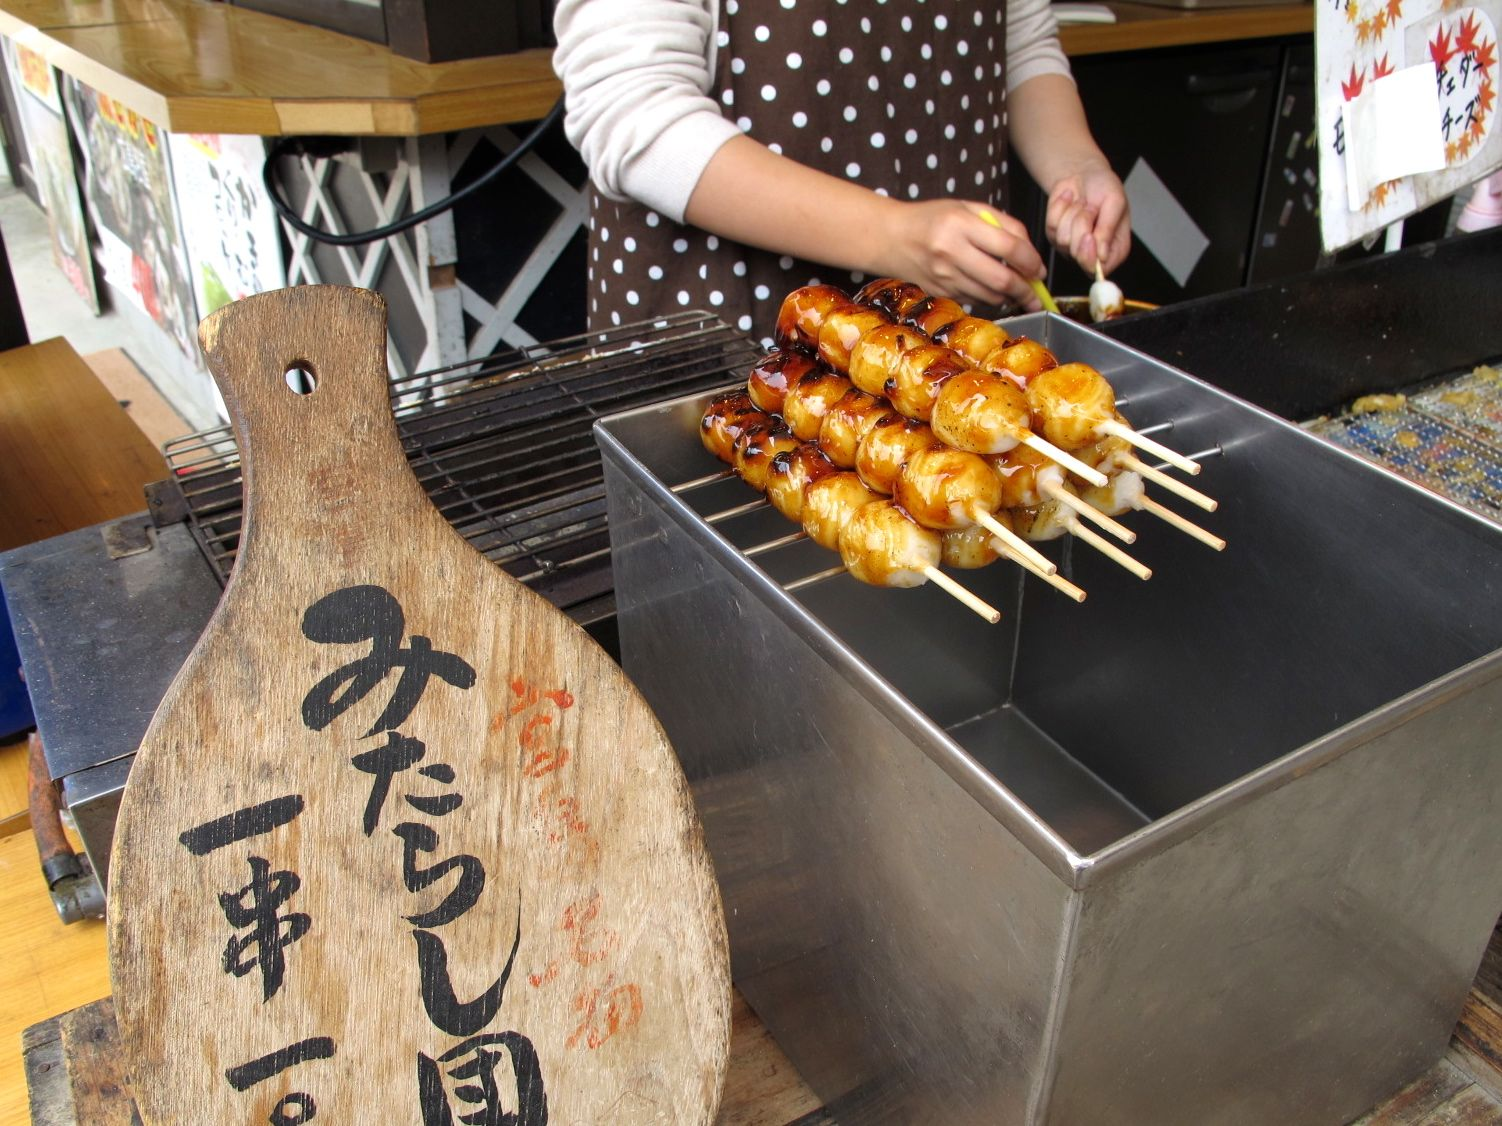 Japanese Street Food Photos together with Jose additionally Chinatown moreover Bacon Tostilocos in addition Takoyaki Recipe. on japanese street festival